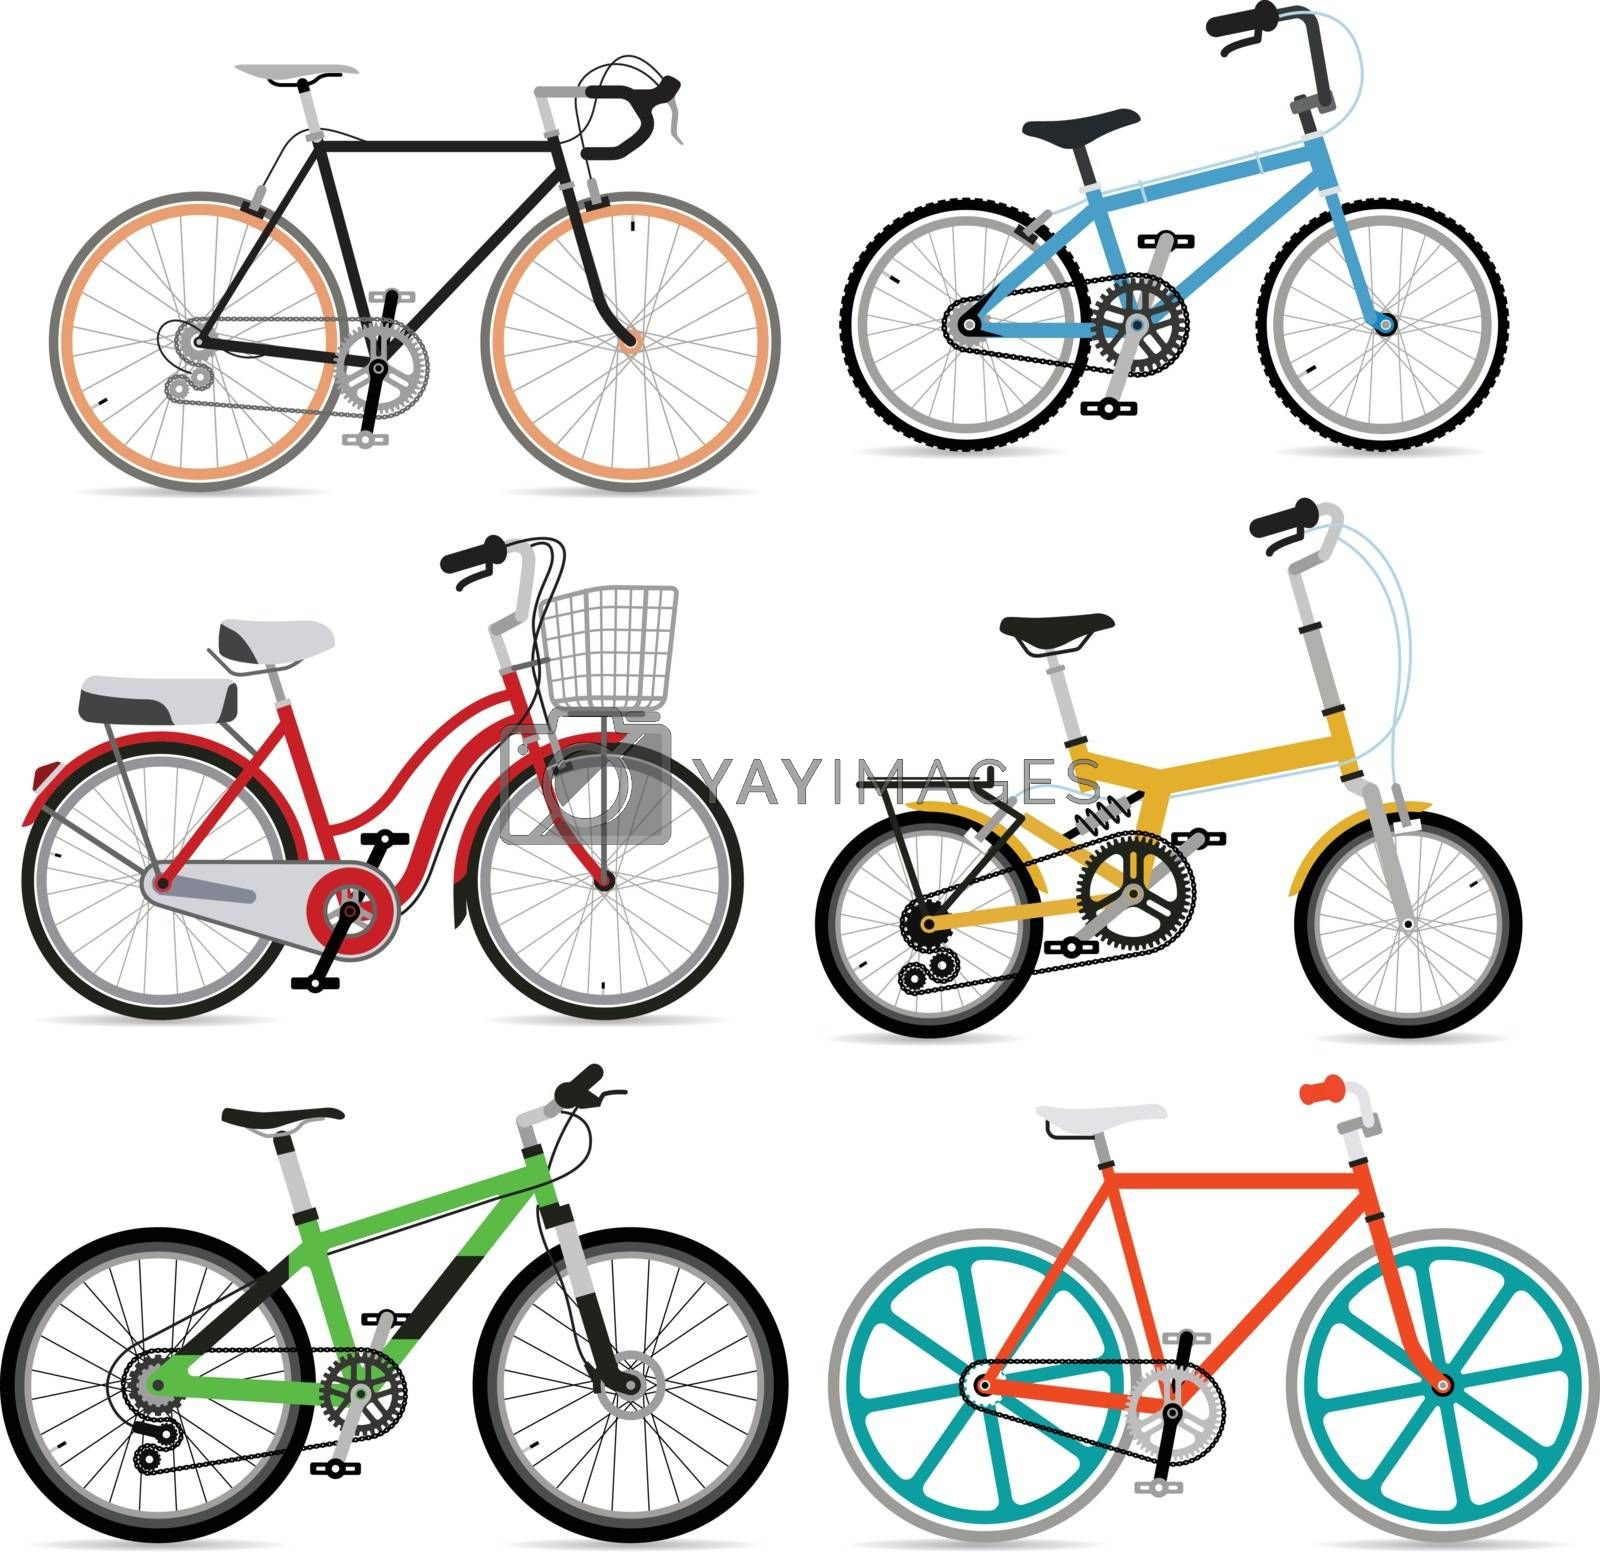 Bicycles by kartyl